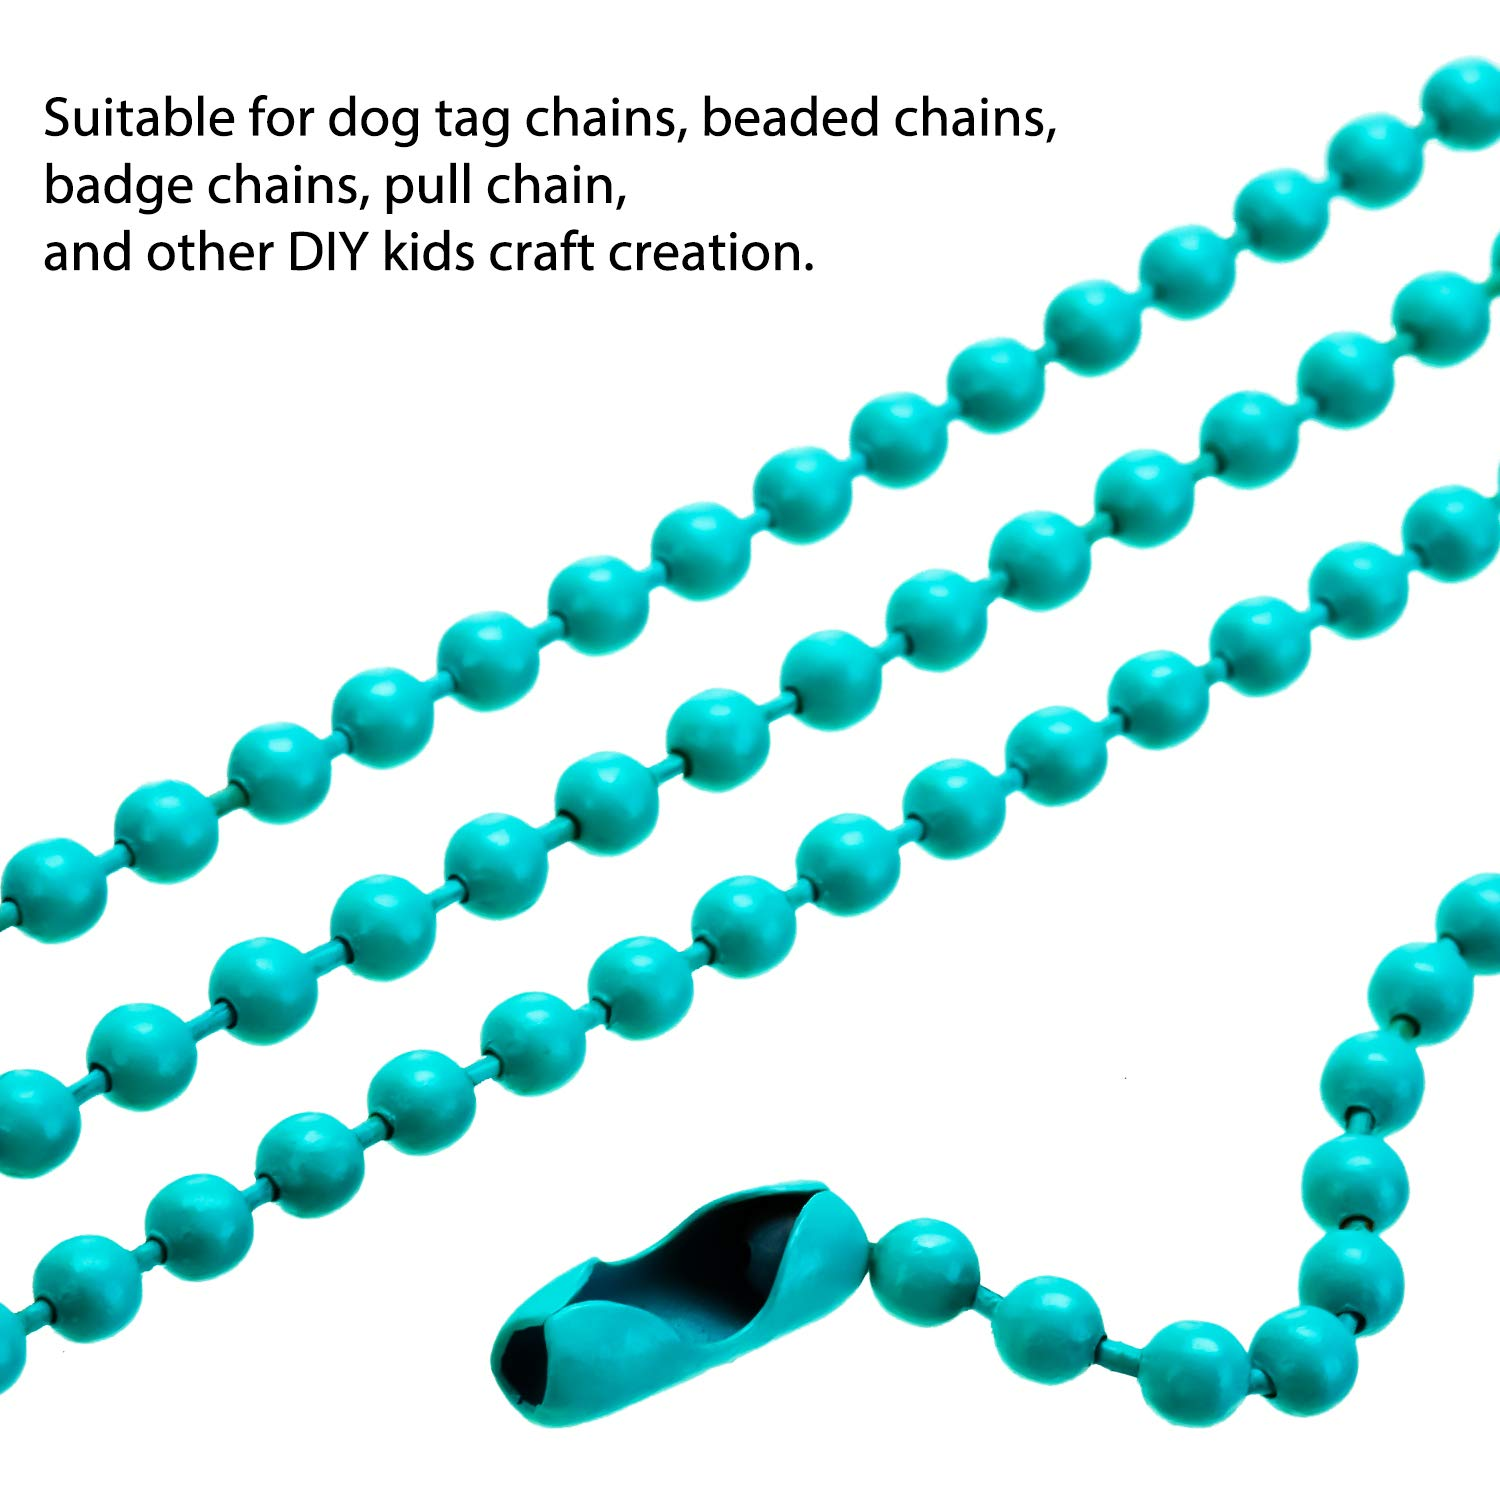 Craft Projects Tags 100 Pieces Key Chain Ball Bead Metal Chain Mixed Color Bead Metal Chain Necklace with Connectors for Jewelry Findings